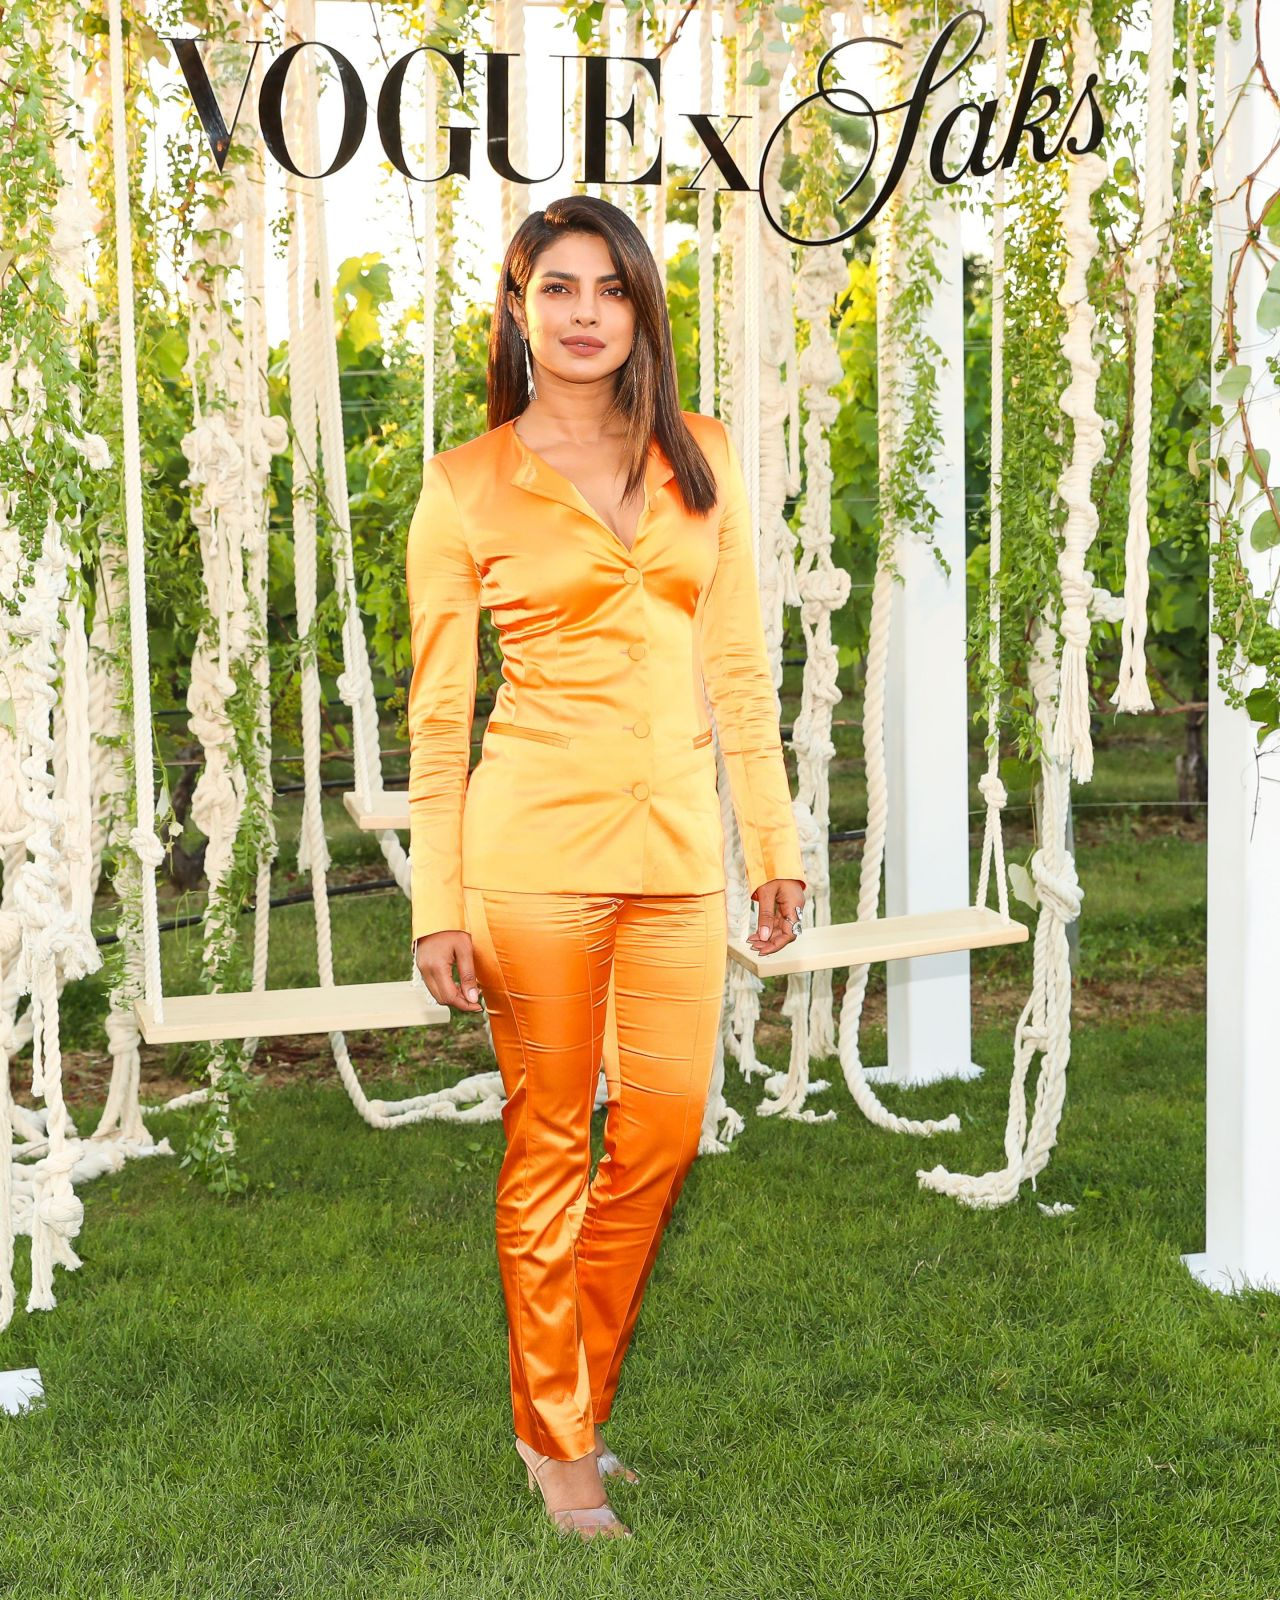 https://celebmafia.com/wp-content/uploads/2018/07/priyanka-chopra-saks-vogue-summer-celebration-07-12-2018-9.jpg